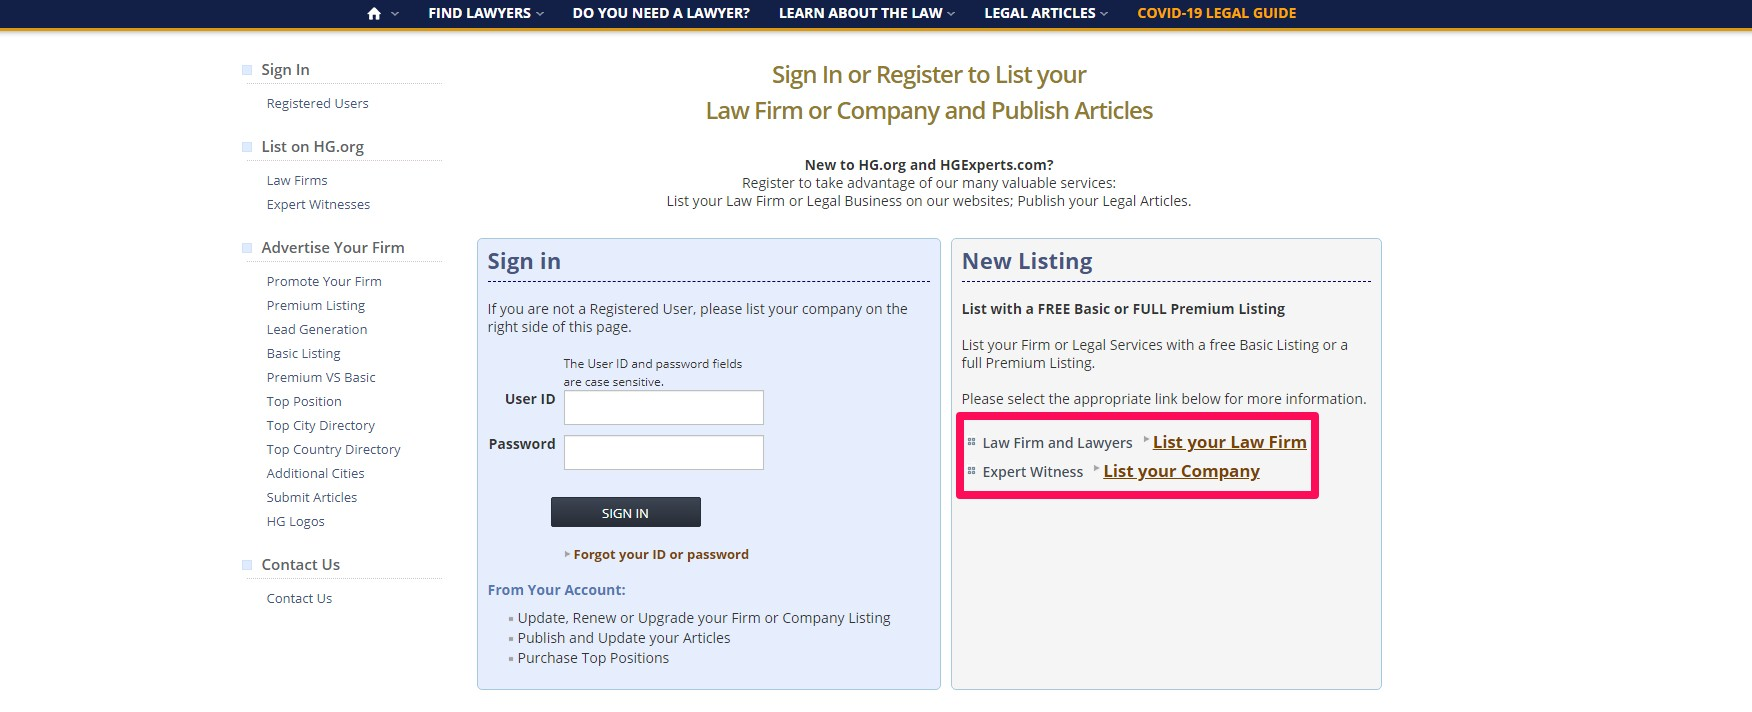 """Unless you already have an HG account, select """"List Your Law Firm"""" on the right panel."""